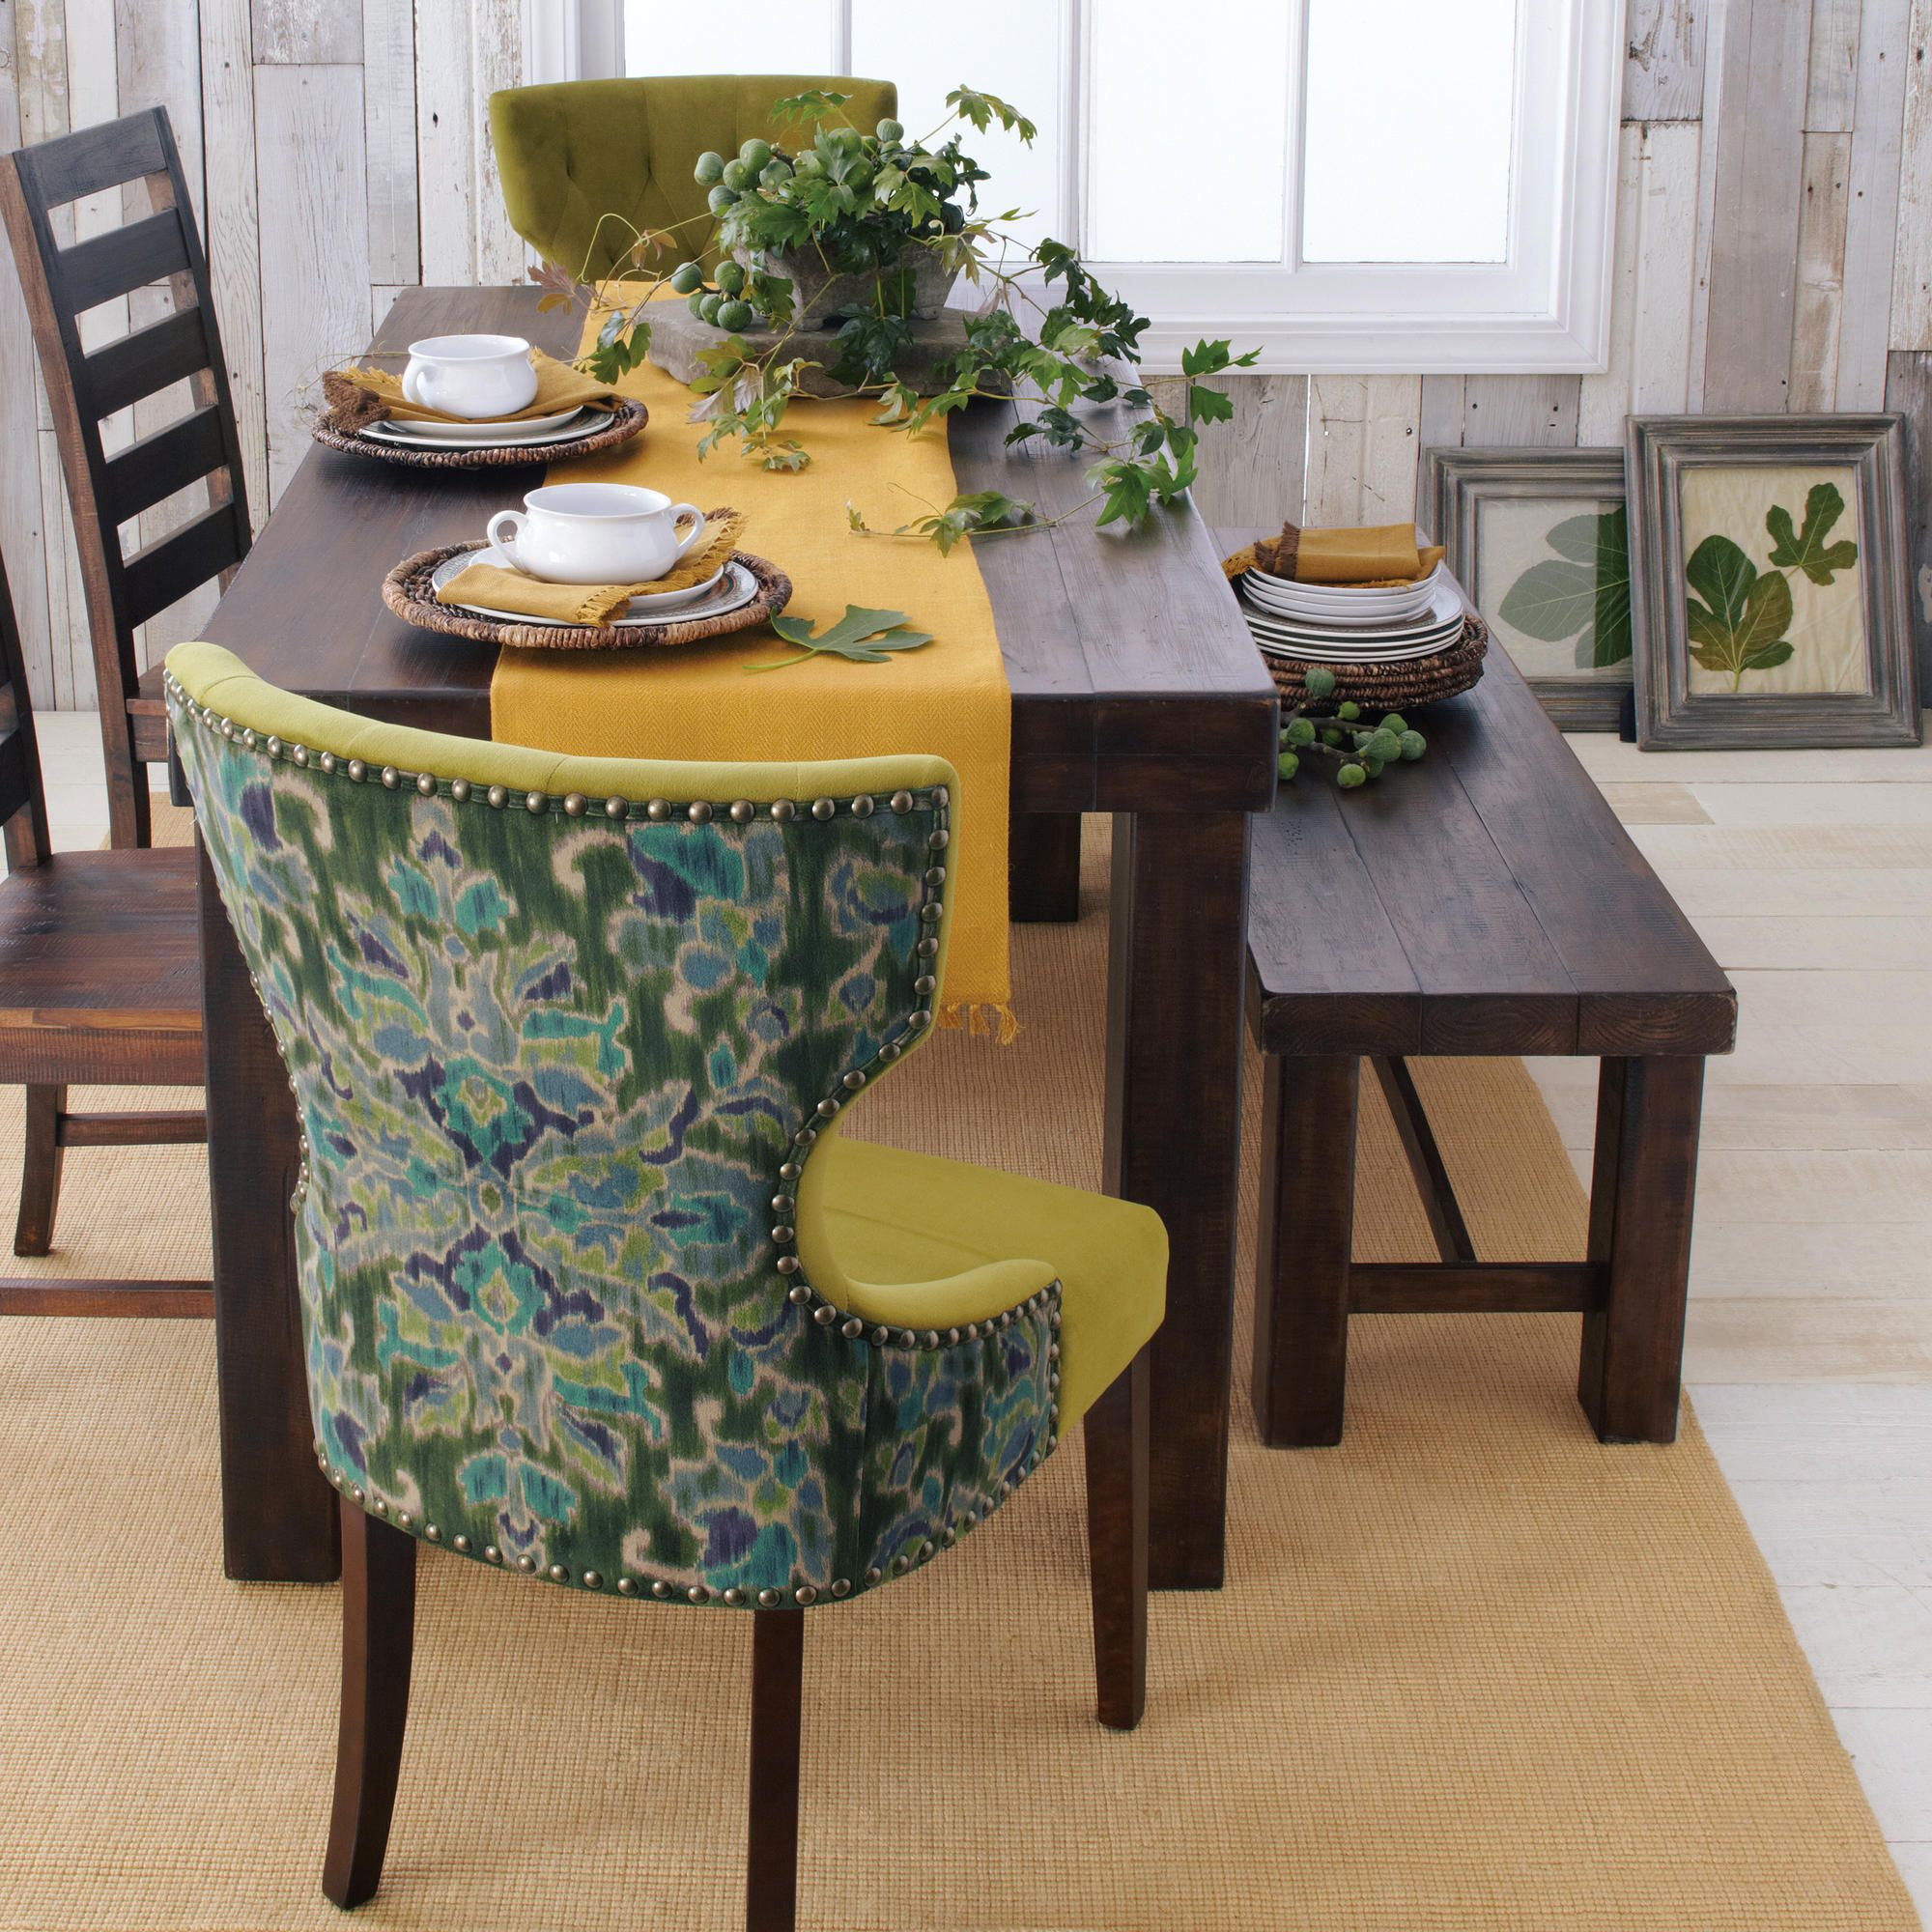 francine dining table world market 25 off through 11 27 could buy the table bench and two. Black Bedroom Furniture Sets. Home Design Ideas